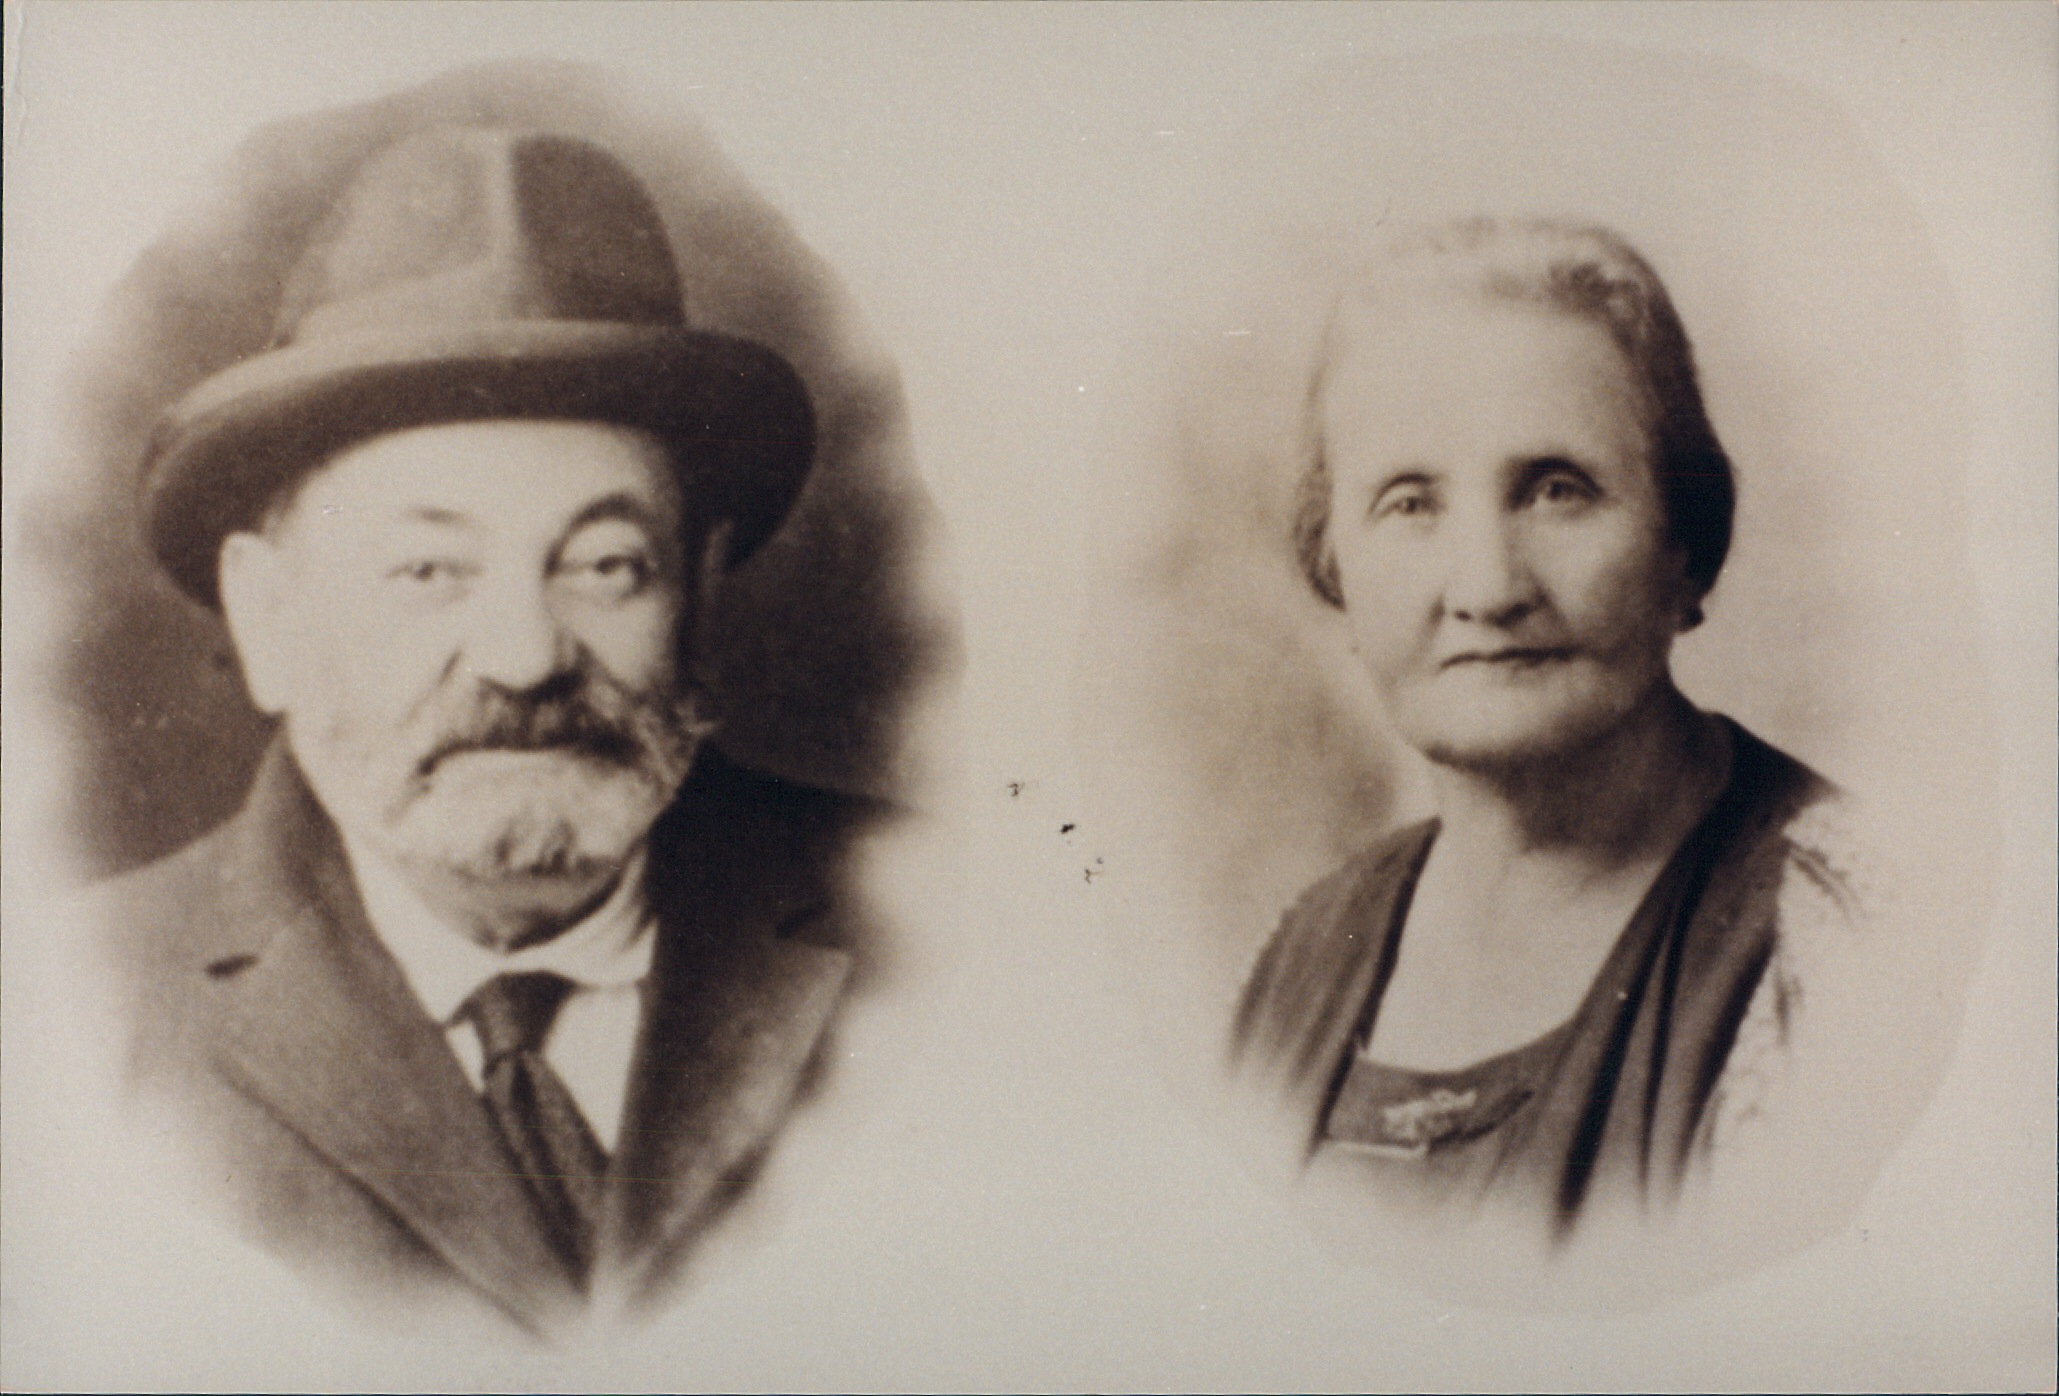 My great-grandparents, Joseph and Edith Letwin